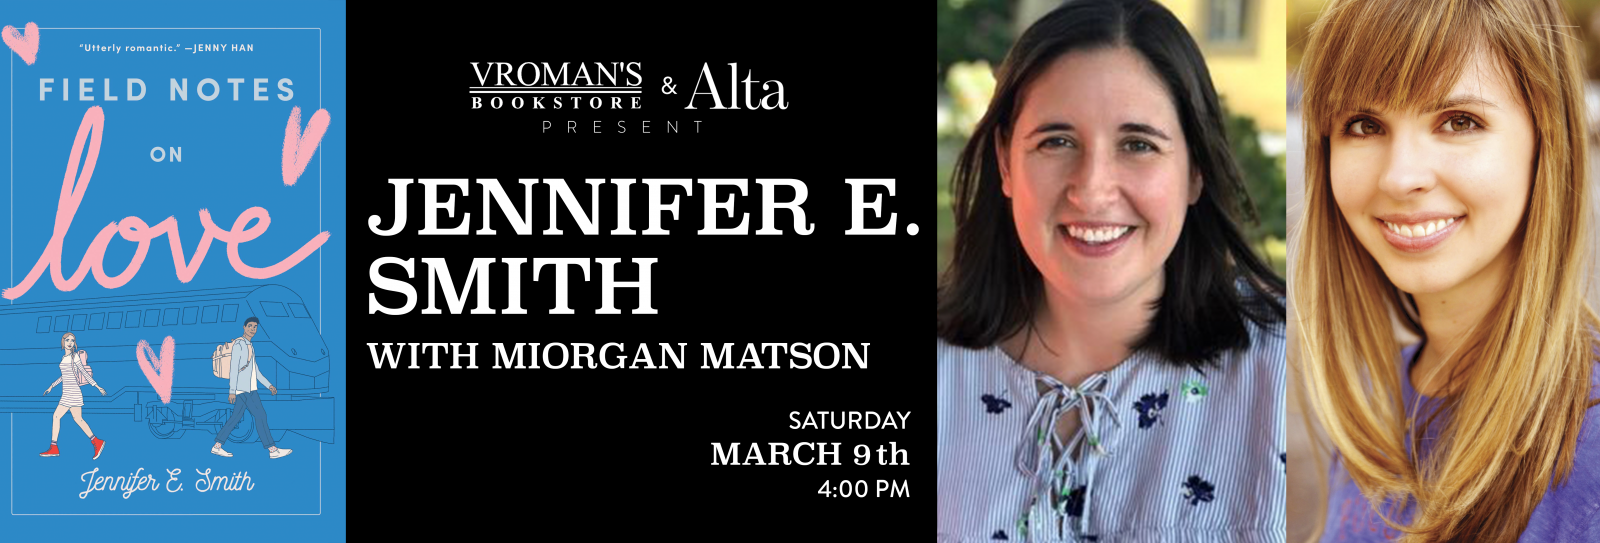 Jennifer E Smith and Morgan Matson Saturday March 9th at 4pm